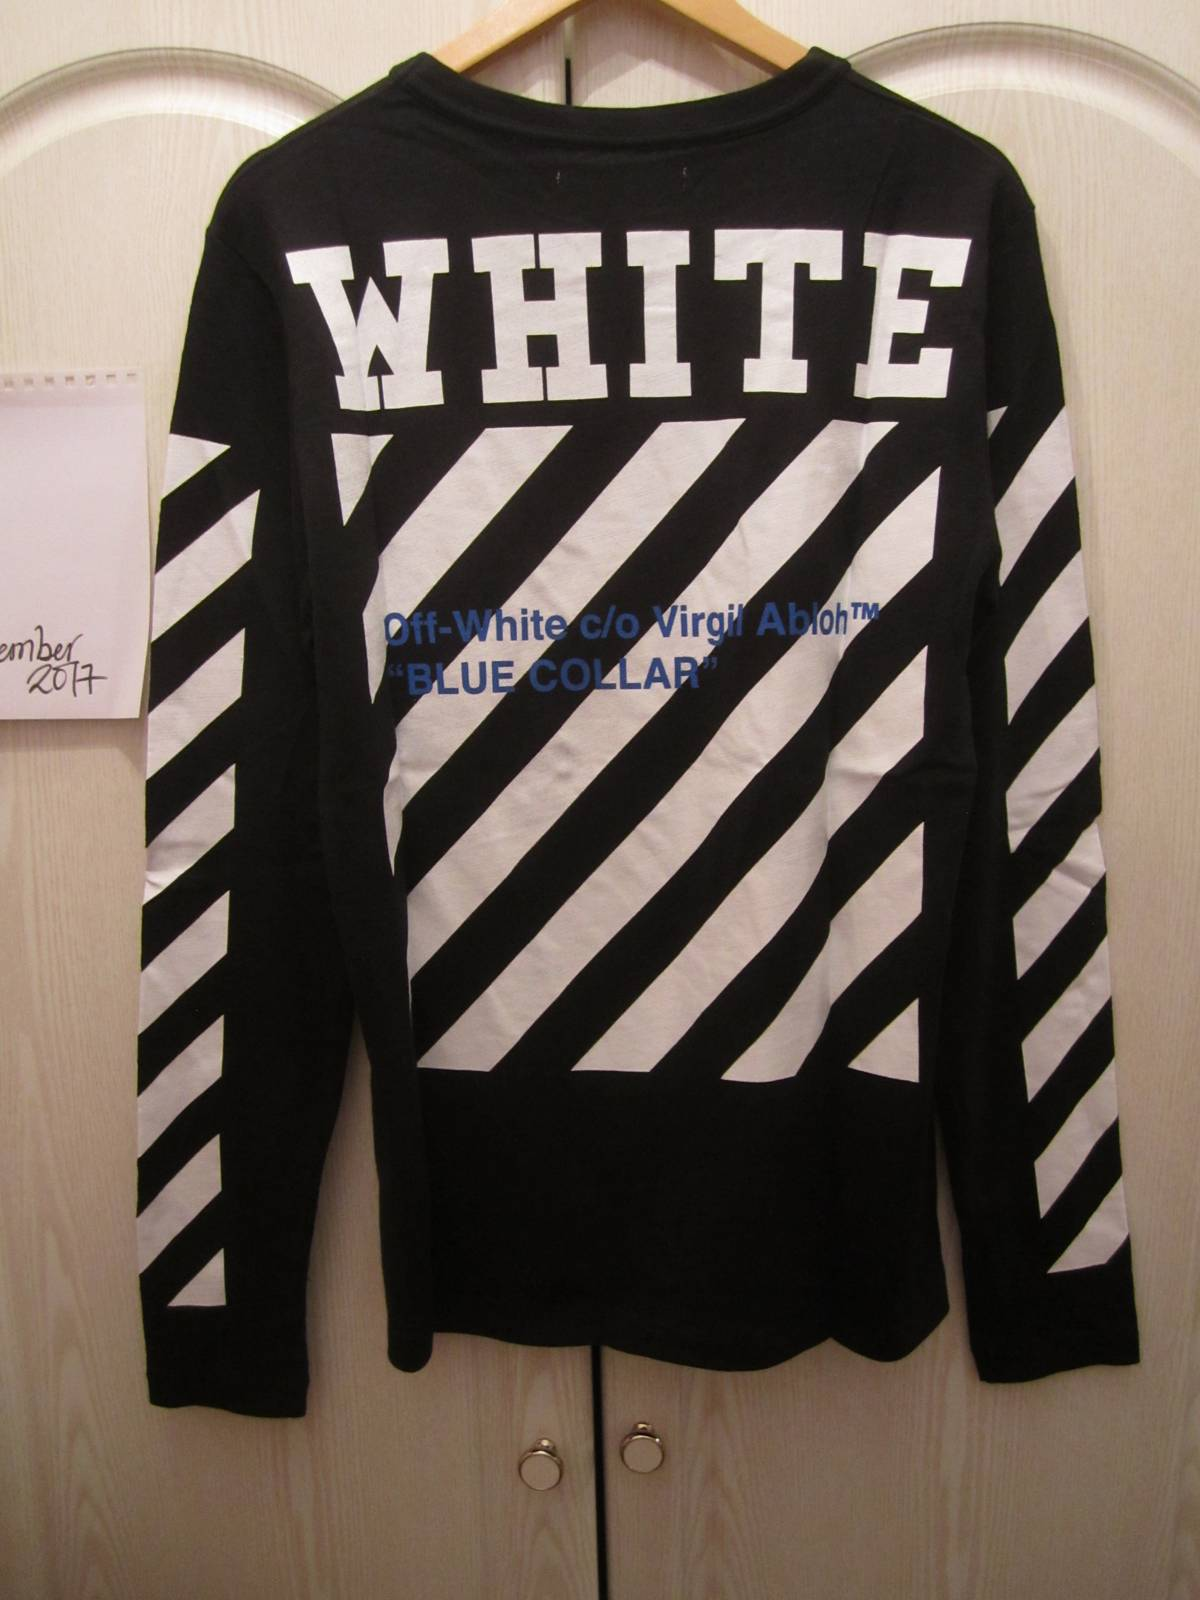 Off-White Off White Blue Collar Long Sleeve Tshirt Black New Small ... 3a1f8177c